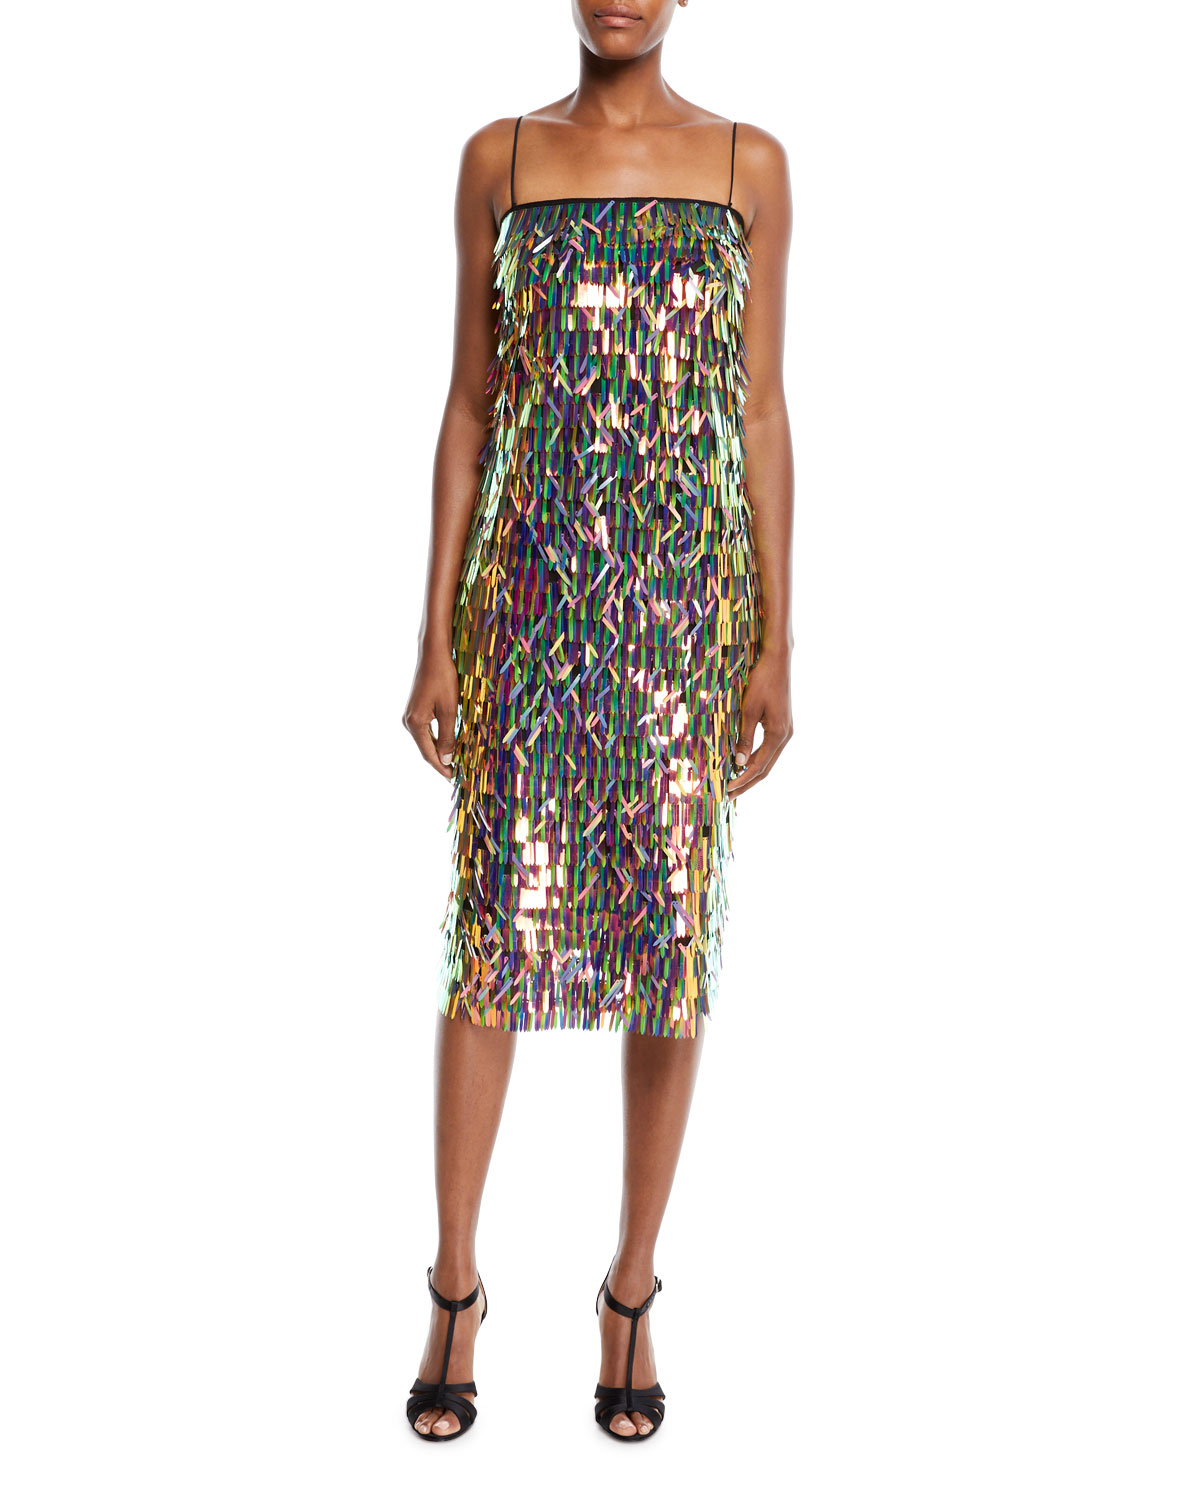 d0e21d1f8 Milly Nickie Strapless Matchstick Paillette Midi Cocktail Dress ...